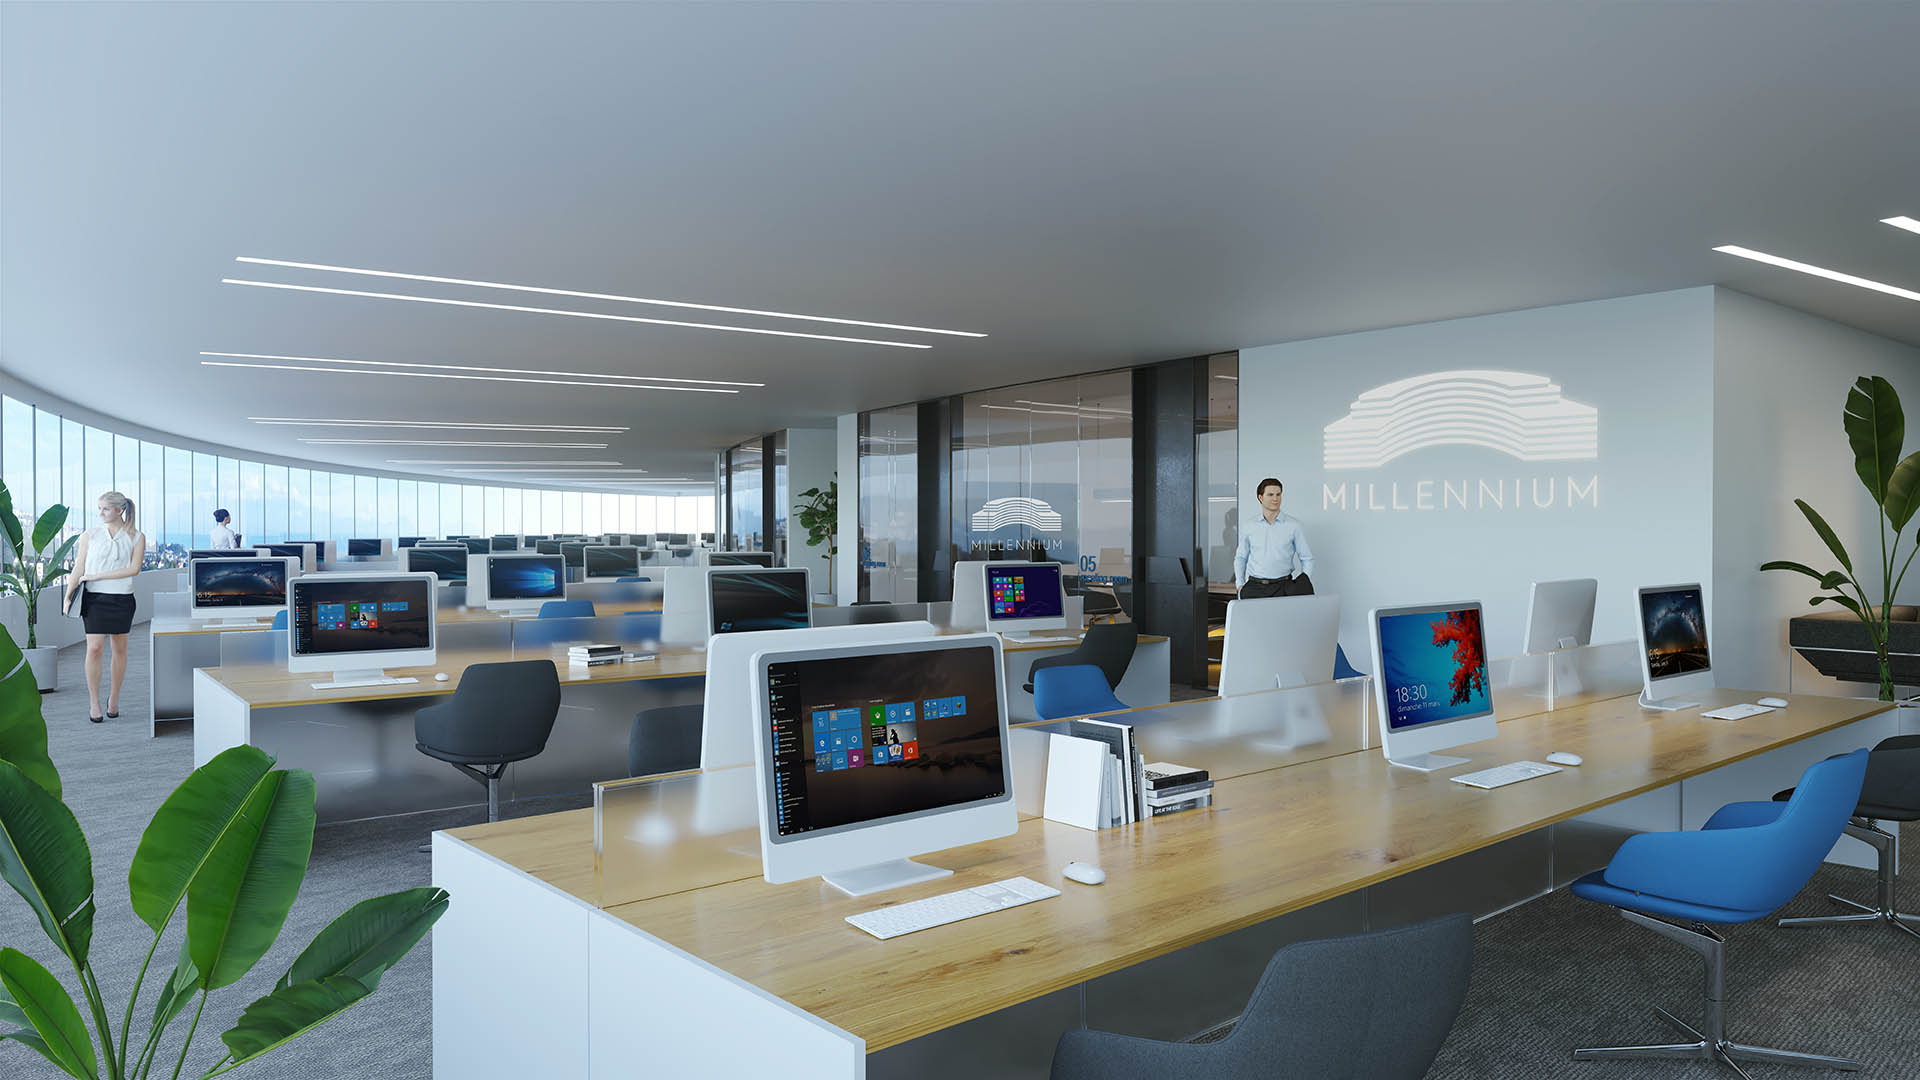 Millennium open space office with workplaces